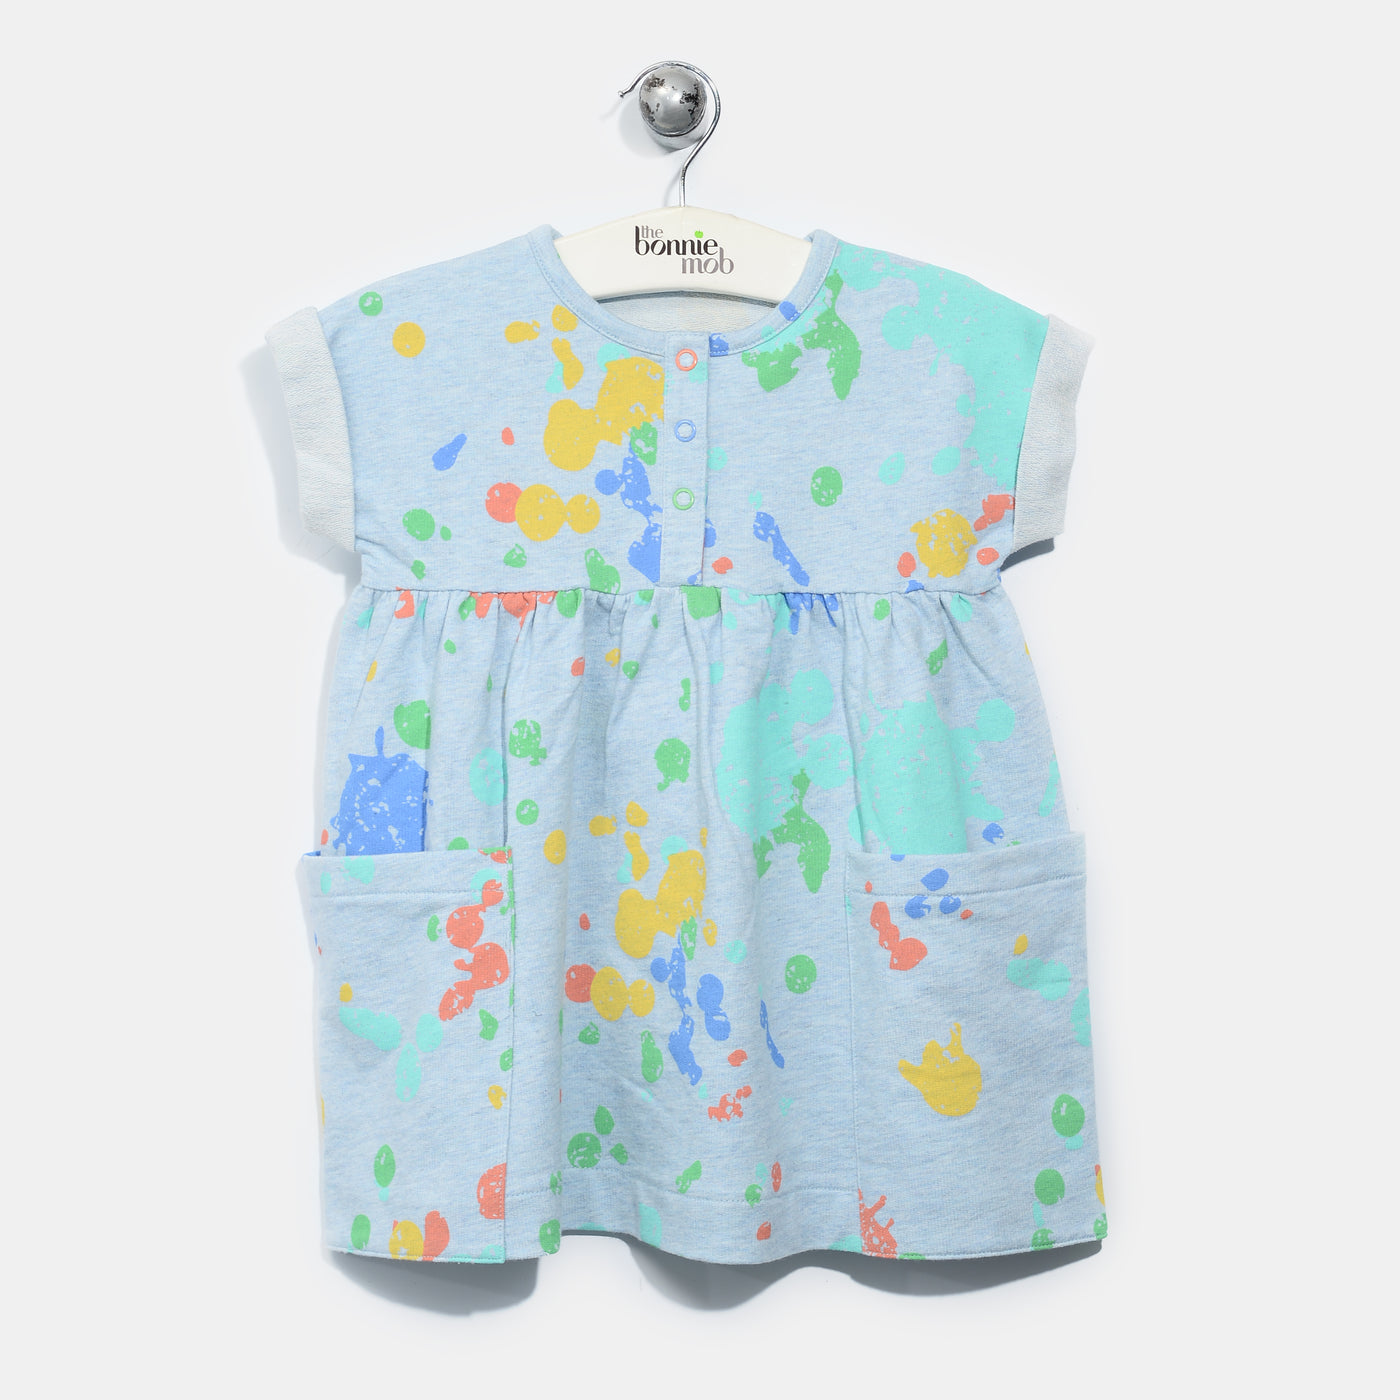 L-RACHEL-Splatter Print Dress-Baby Girl-Faded Denim